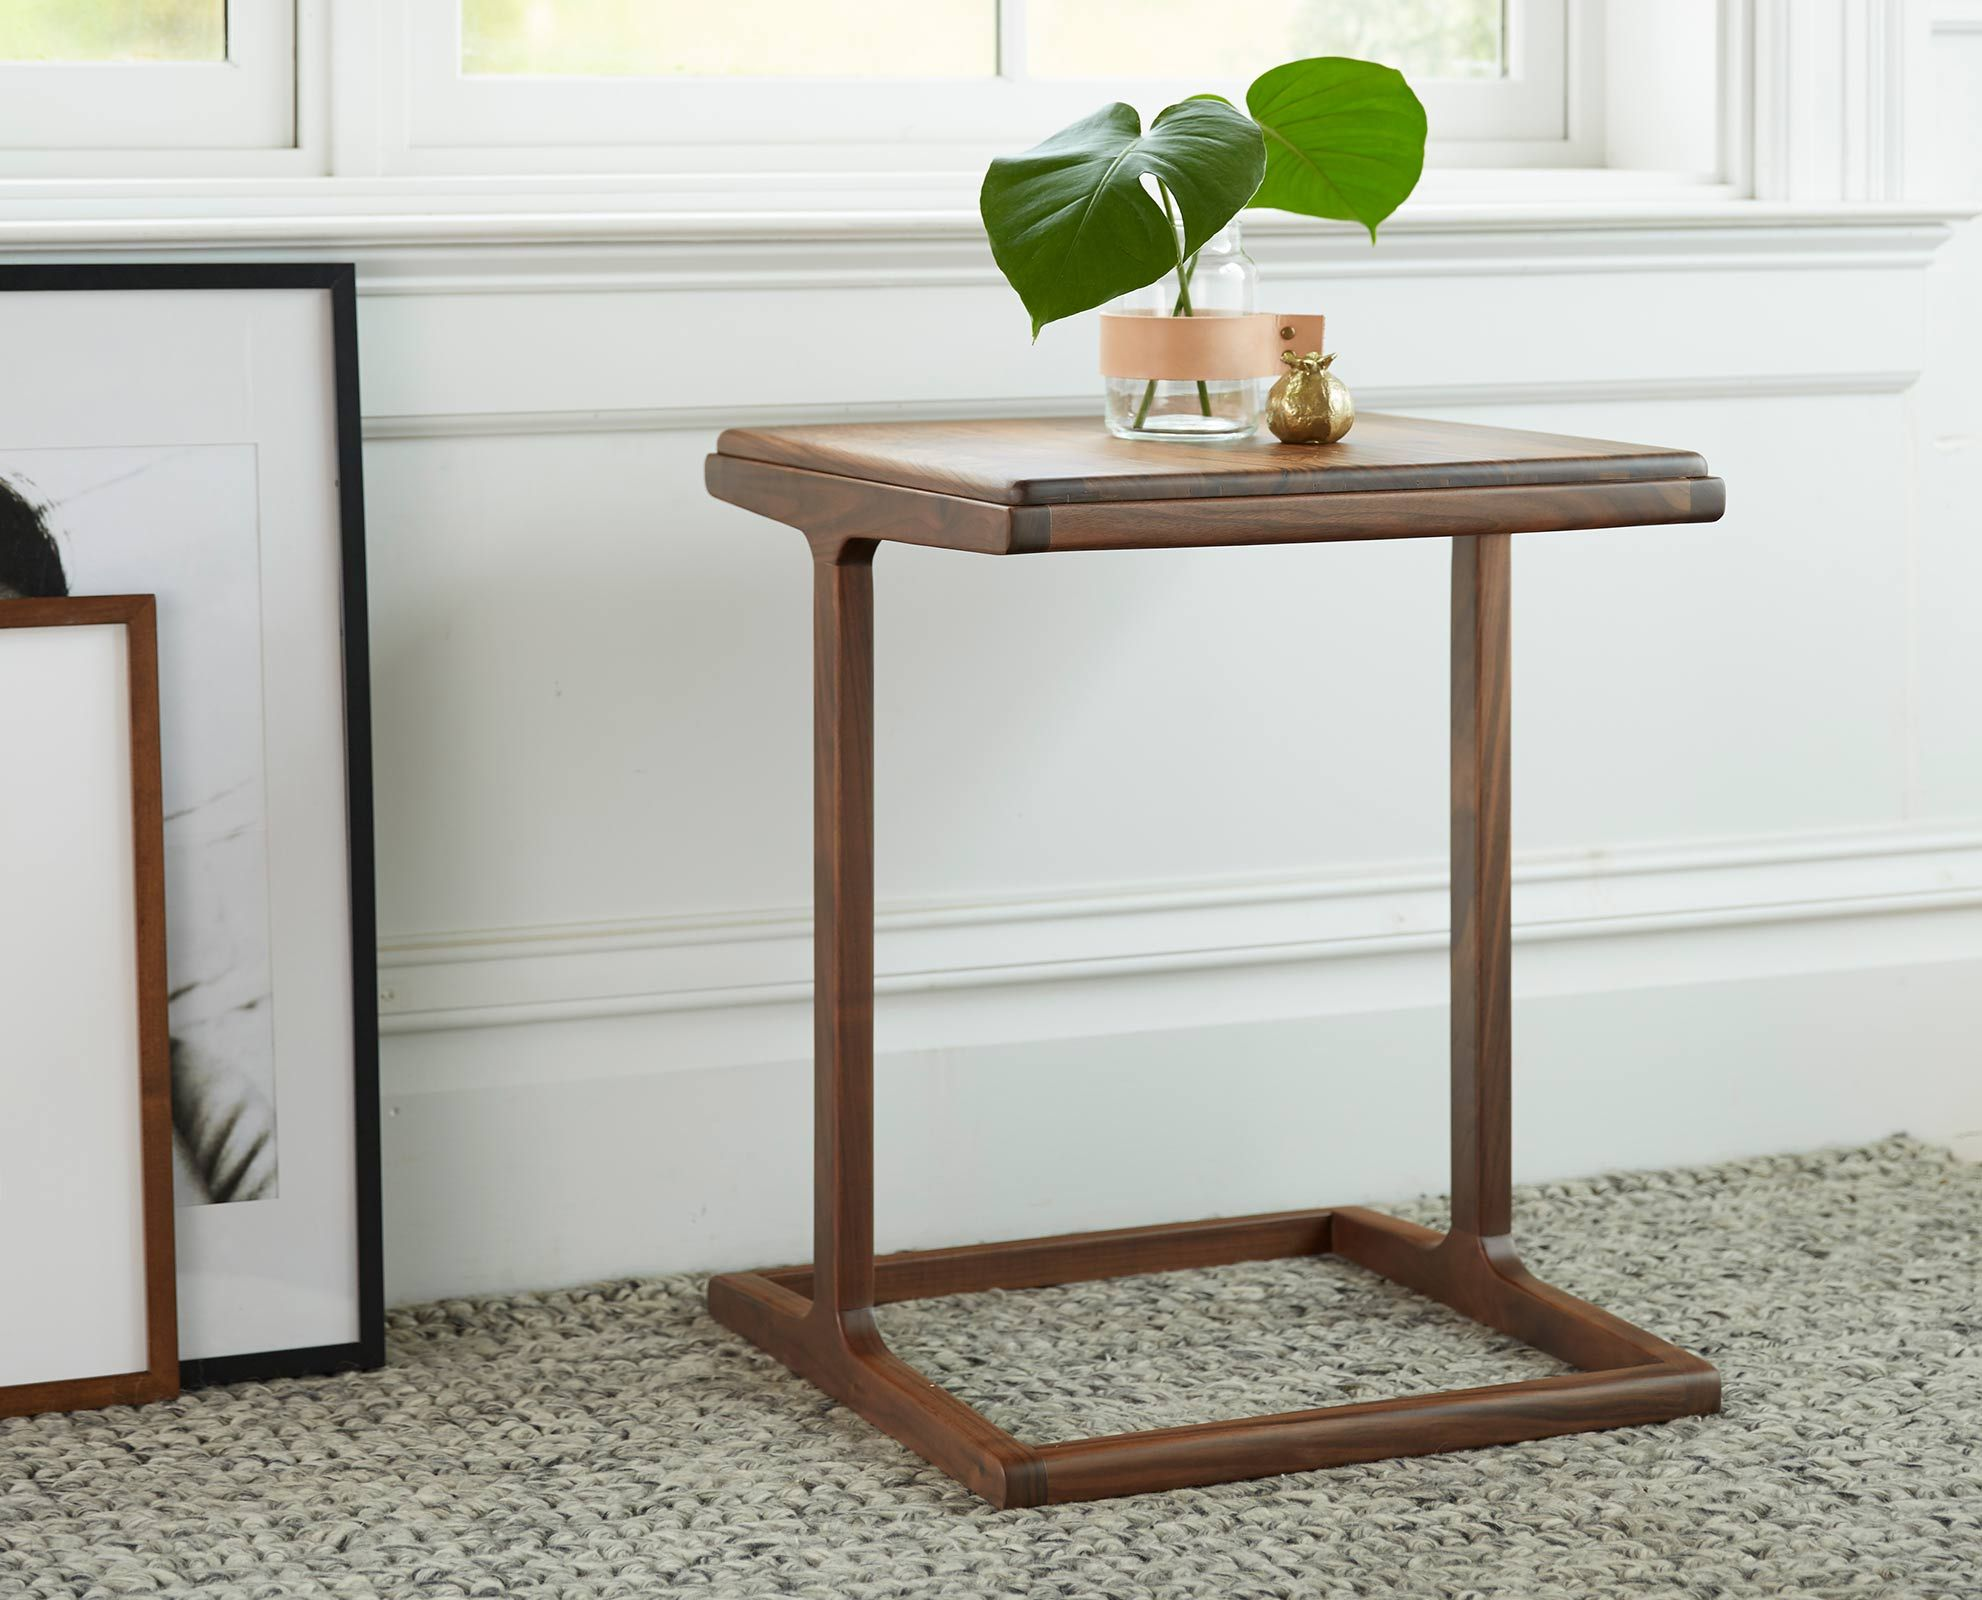 Montia Tray Table Accent Tables Scandinavian Designs Table Tray Table Elegant Tray [ 1600 x 1982 Pixel ]